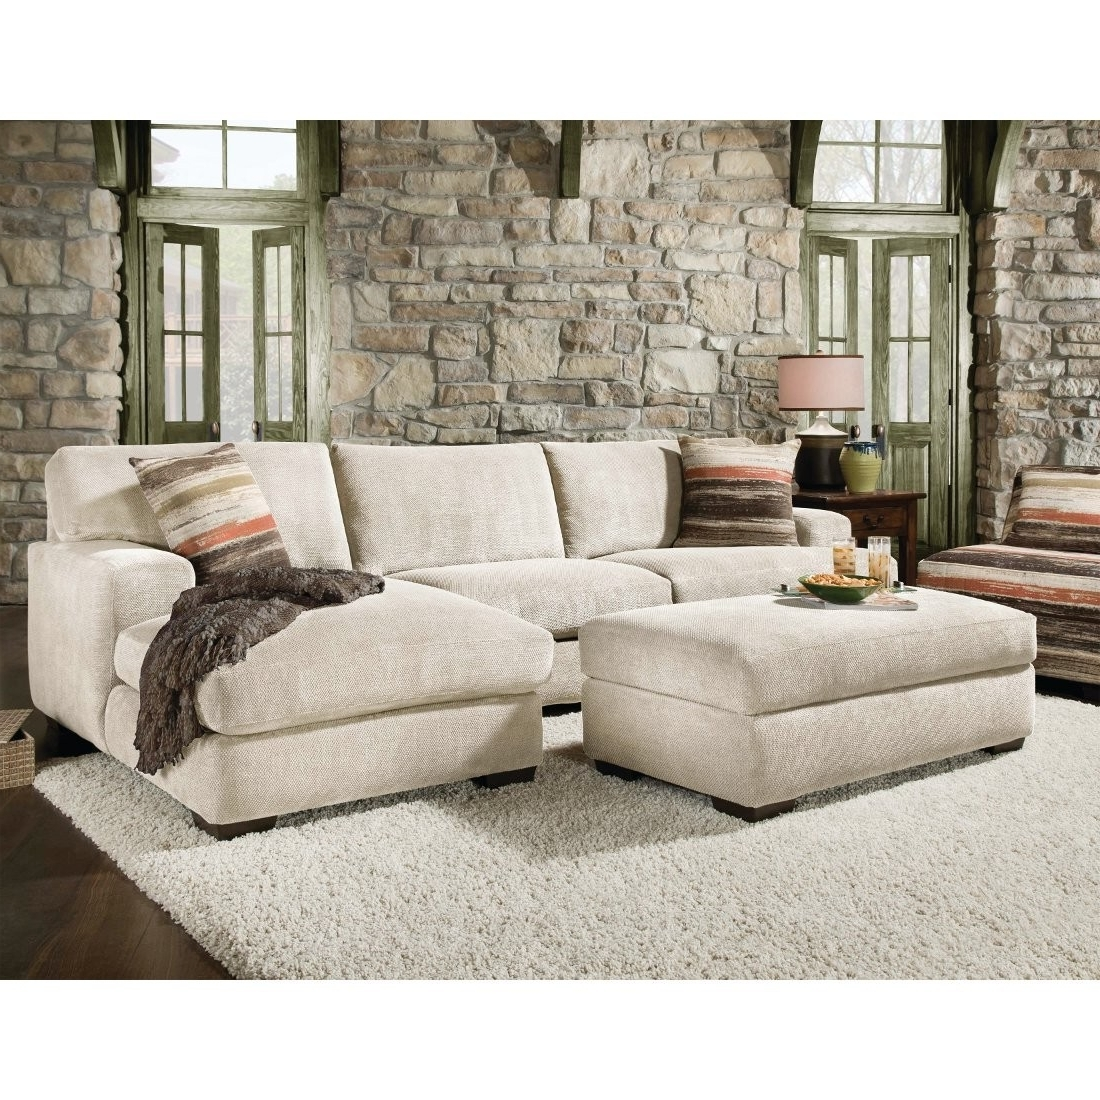 Best And Newest Sectional Sofa Design: Sectional Sofa With Chaise And Ottoman Regarding Sectional Sofas With Chaise And Ottoman (View 8 of 20)